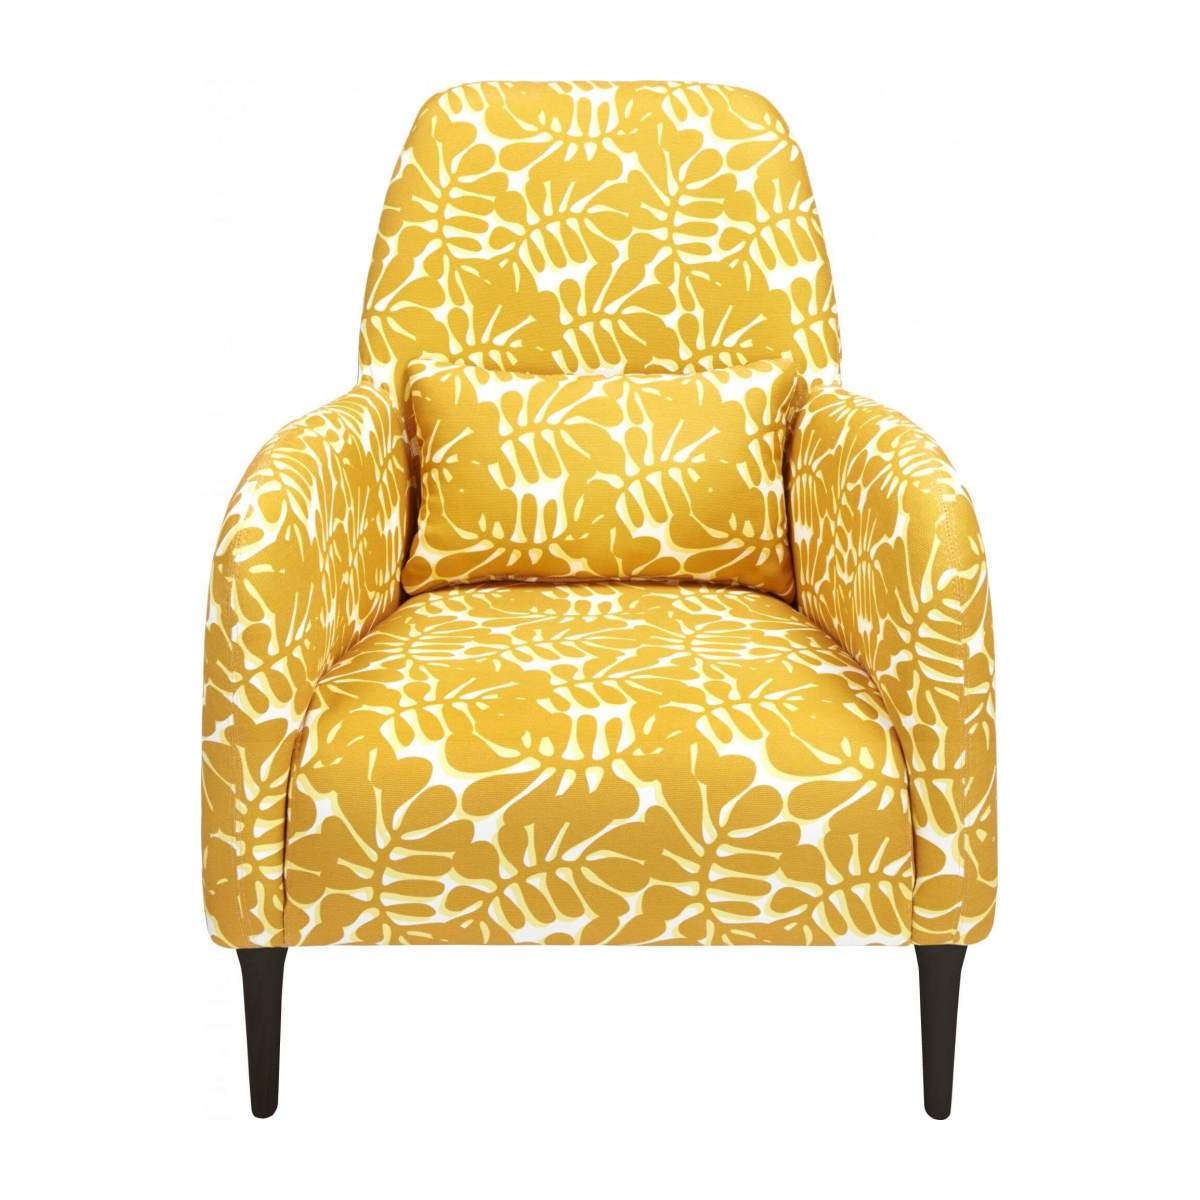 Armchair with yellow patterns n°1